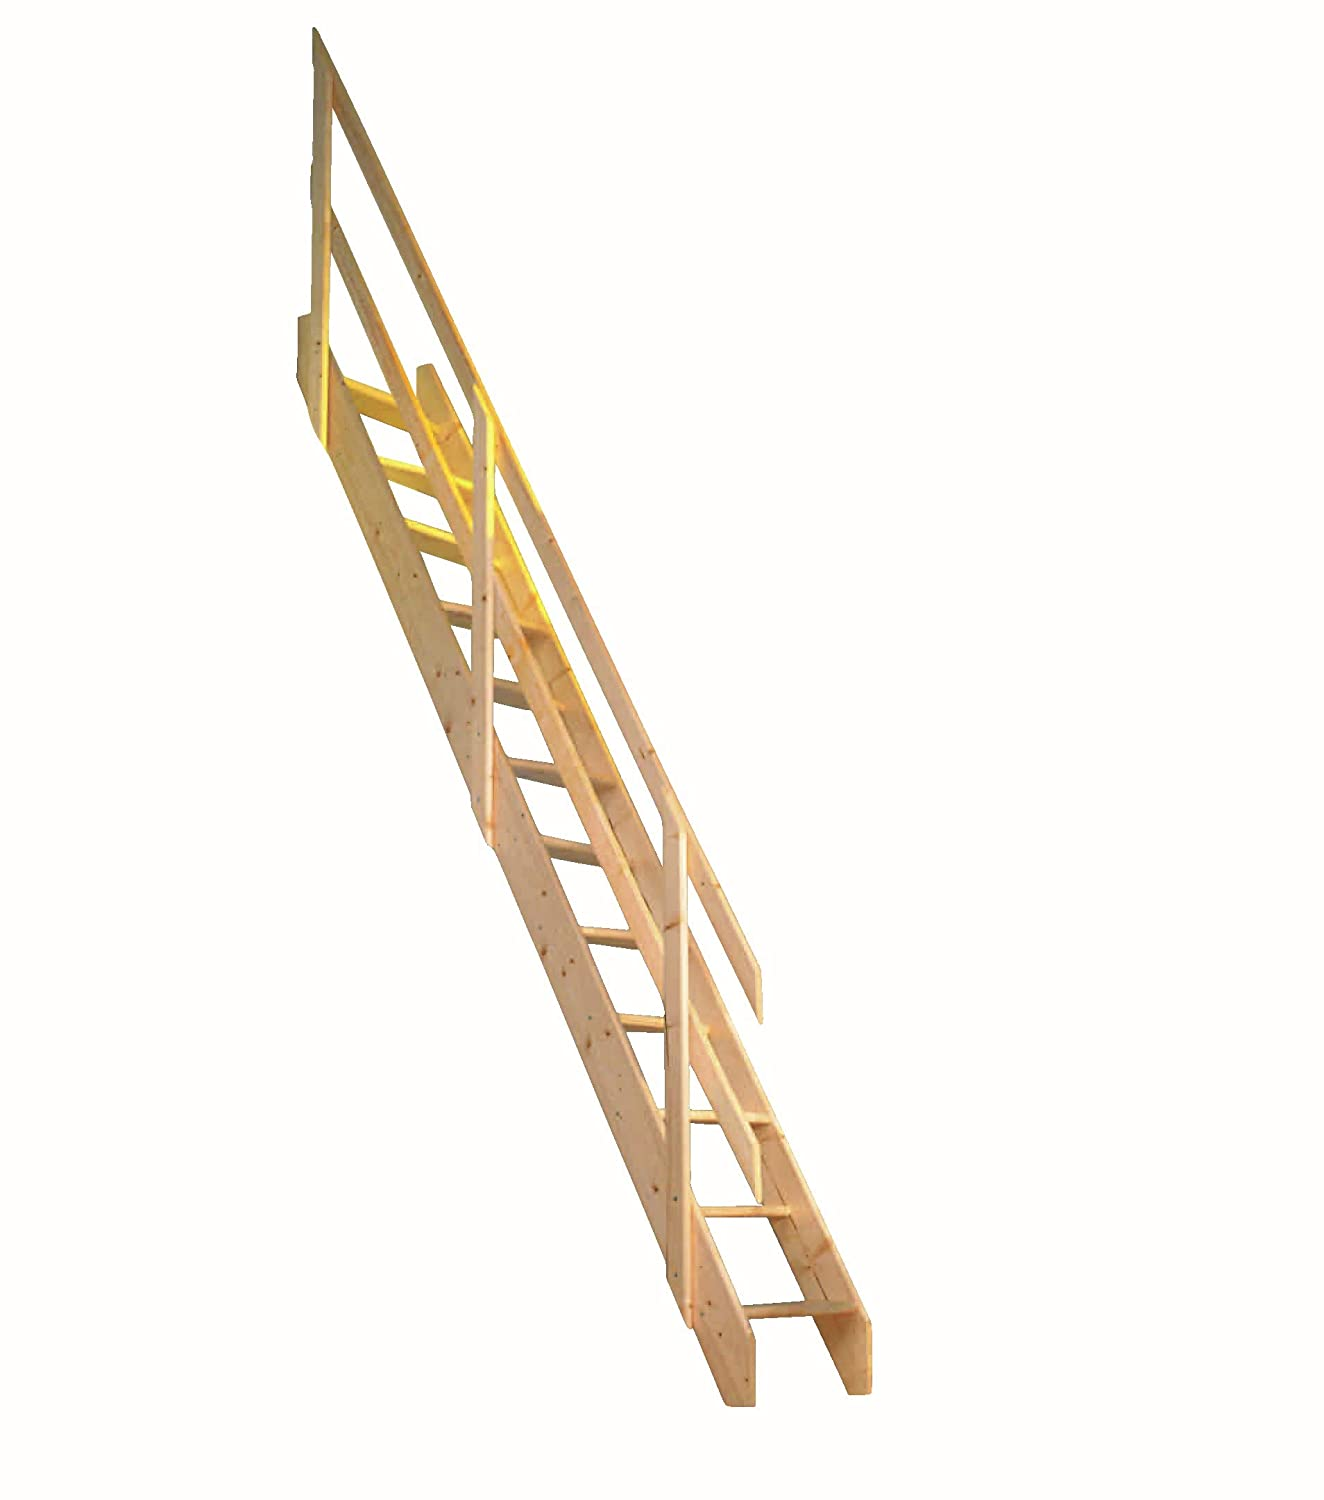 Dolle Amsterdam Wooden Space Saver Staircase Kit (Loft Stair) - Suitable for a Floor Height up to 2980mm